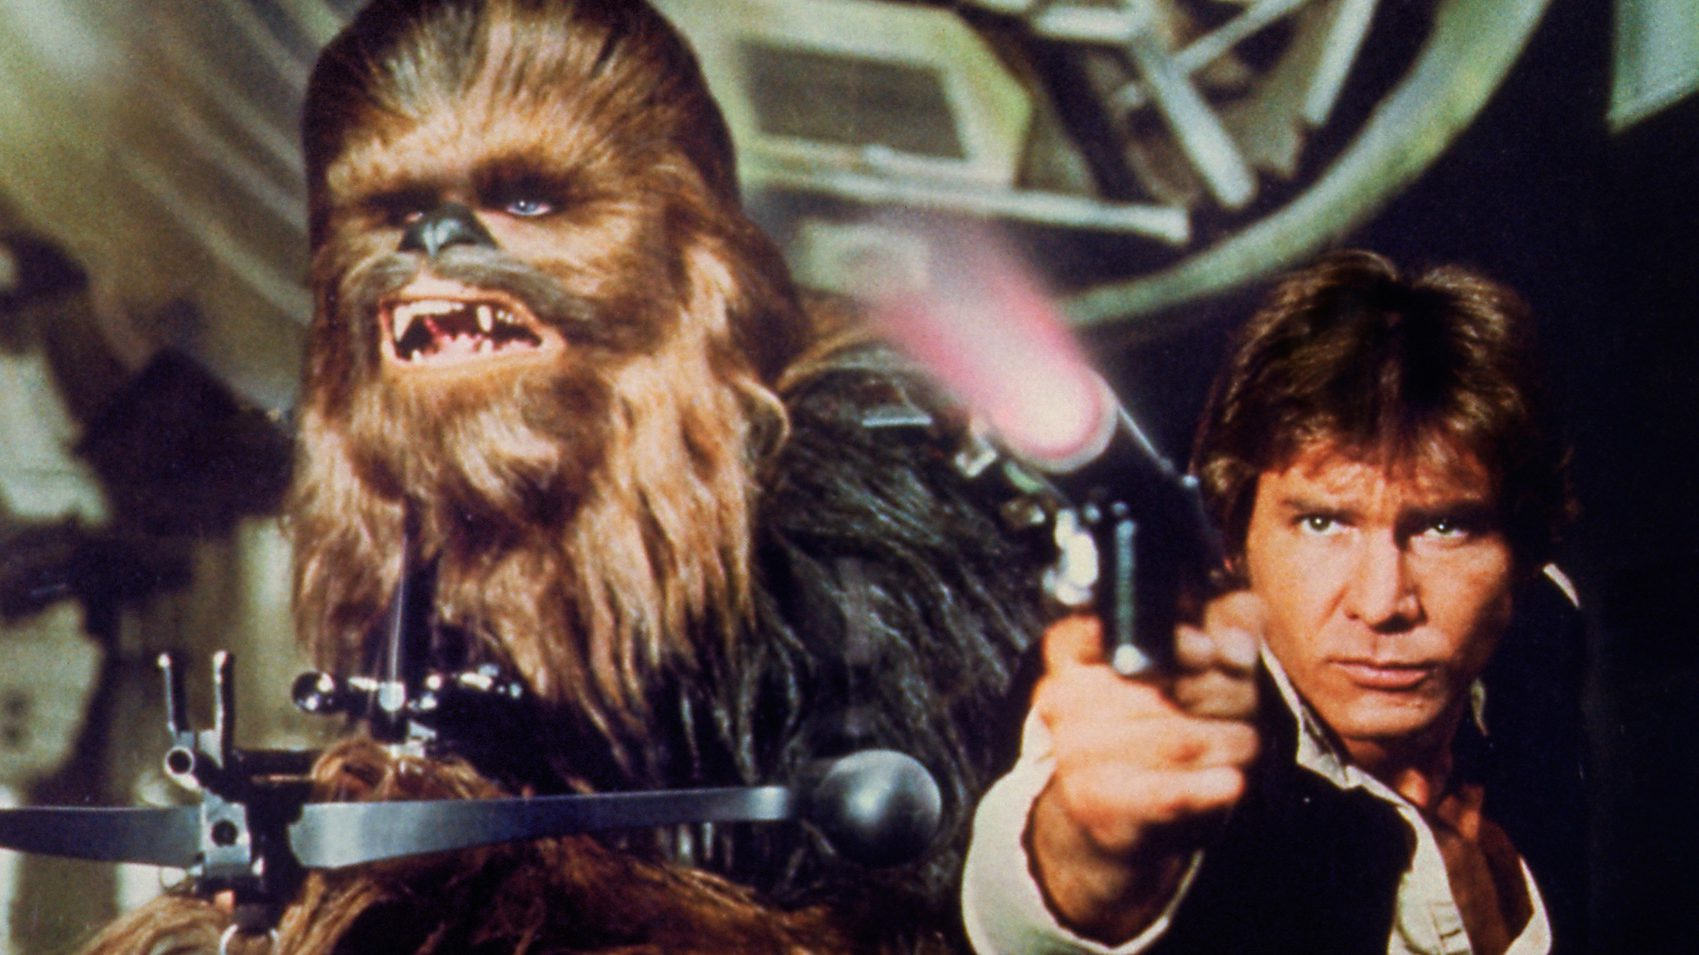 What can we expect to see in Solo: A Star Wars Story?